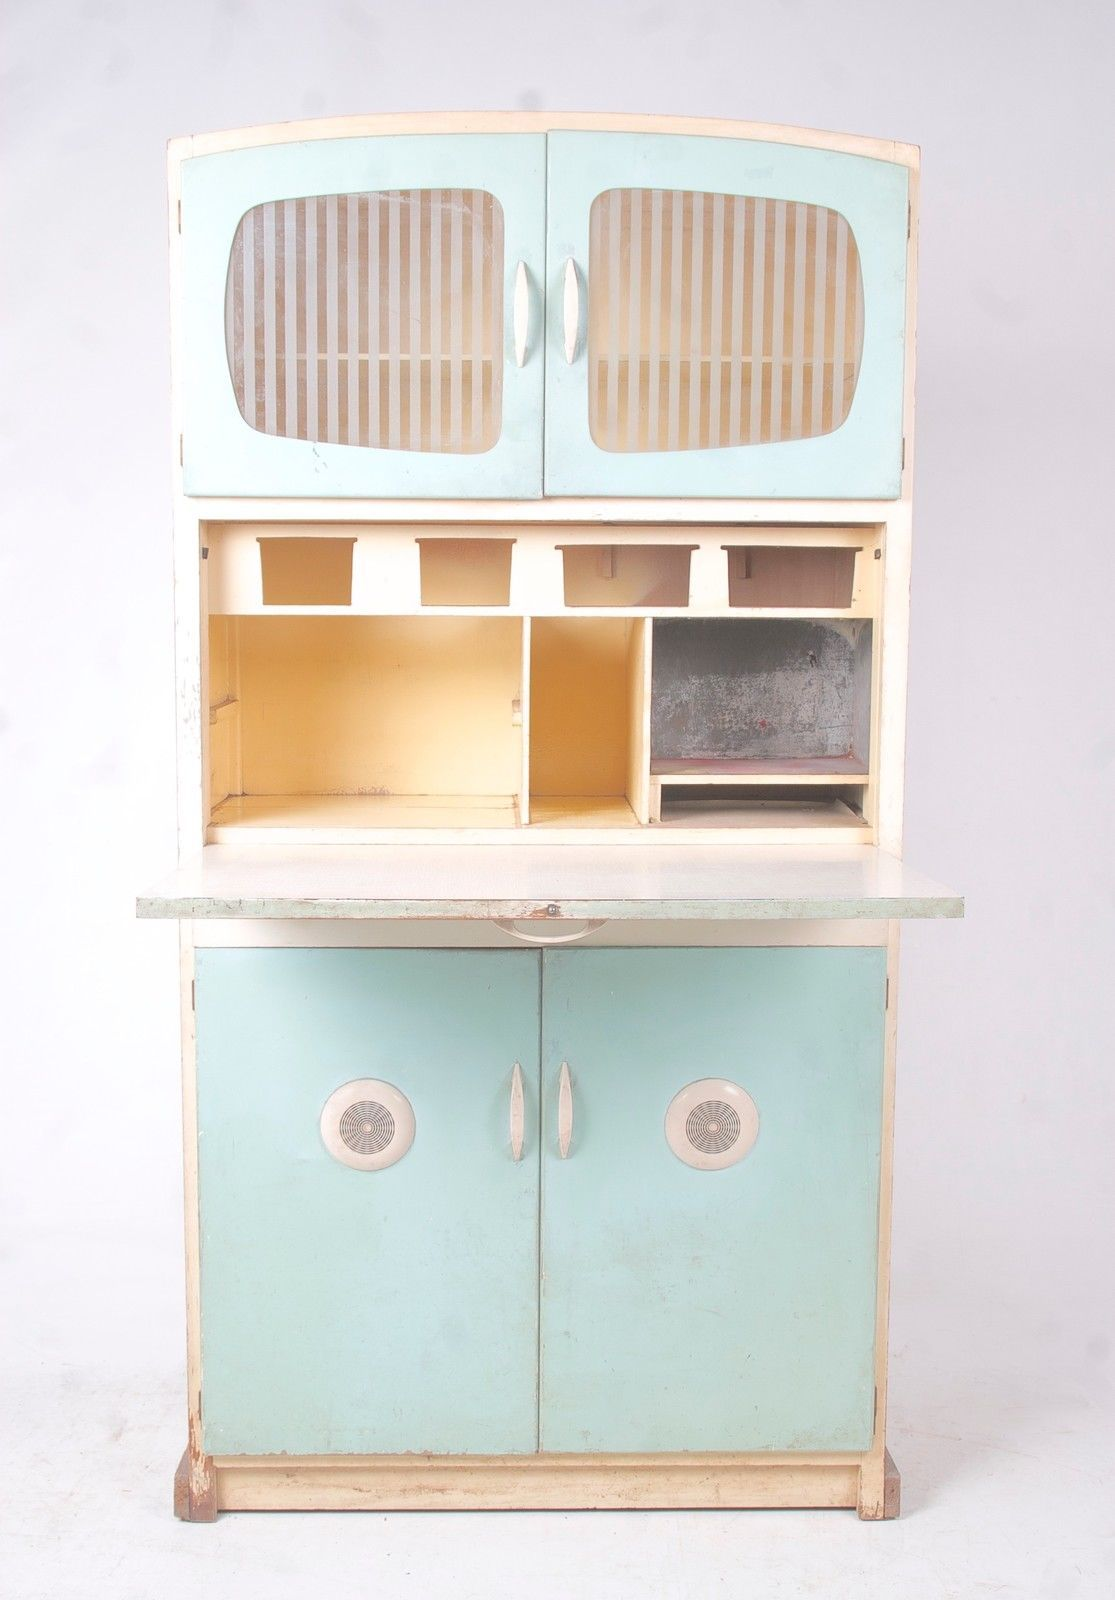 1950s Kitchen Furniture Vintage 1950s Kitchen Pantry Cabinet Larder Kitchenette Hygena